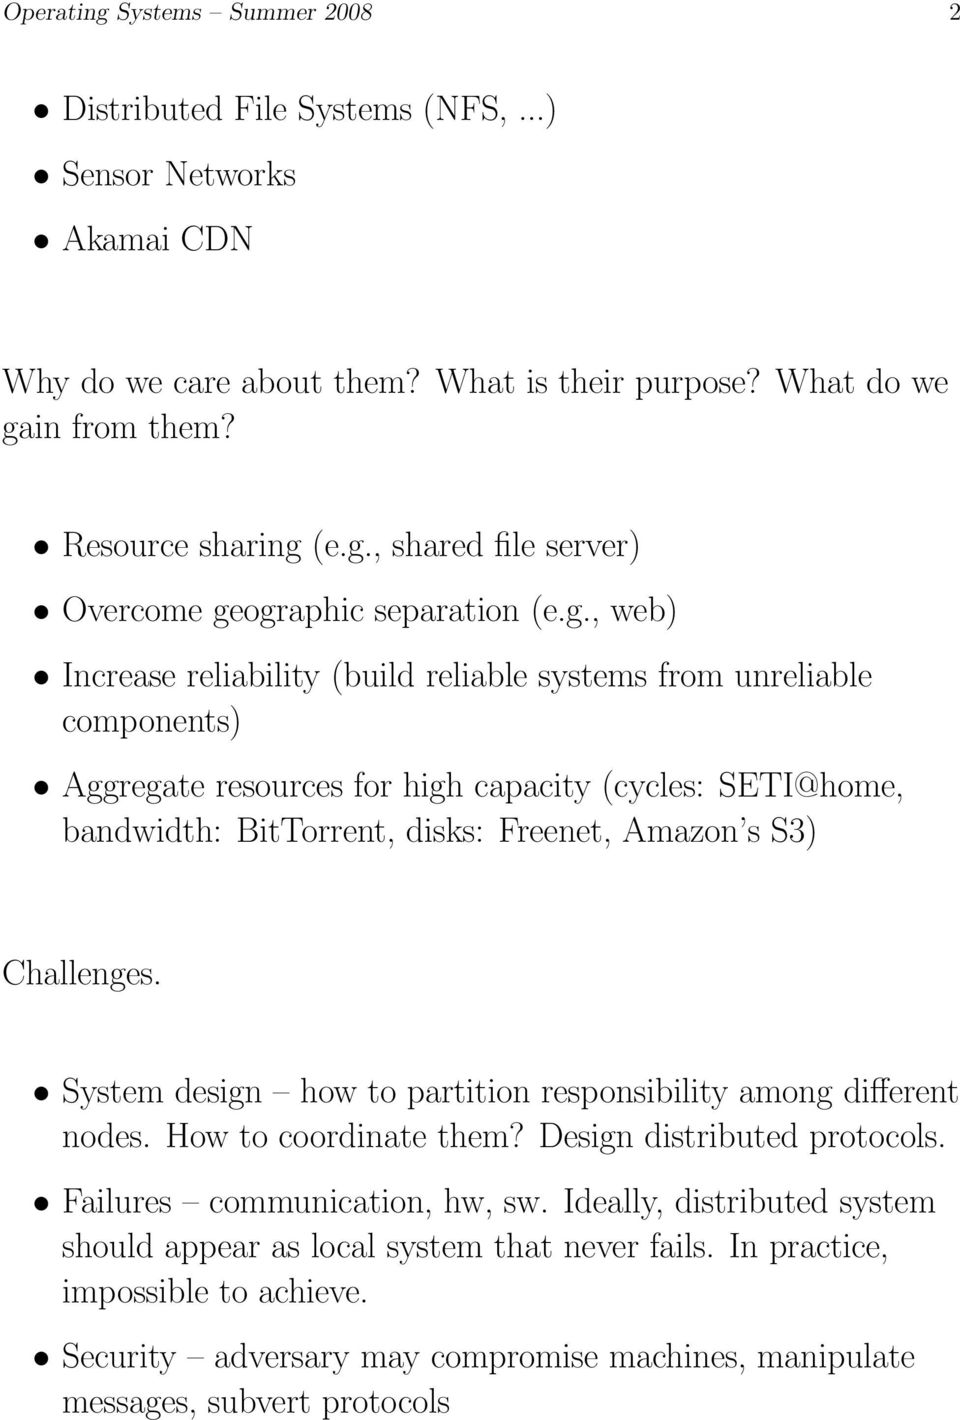 Challenges. System design how to partition responsibility among different nodes. How to coordinate them? Design distributed protocols. Failures communication, hw, sw.